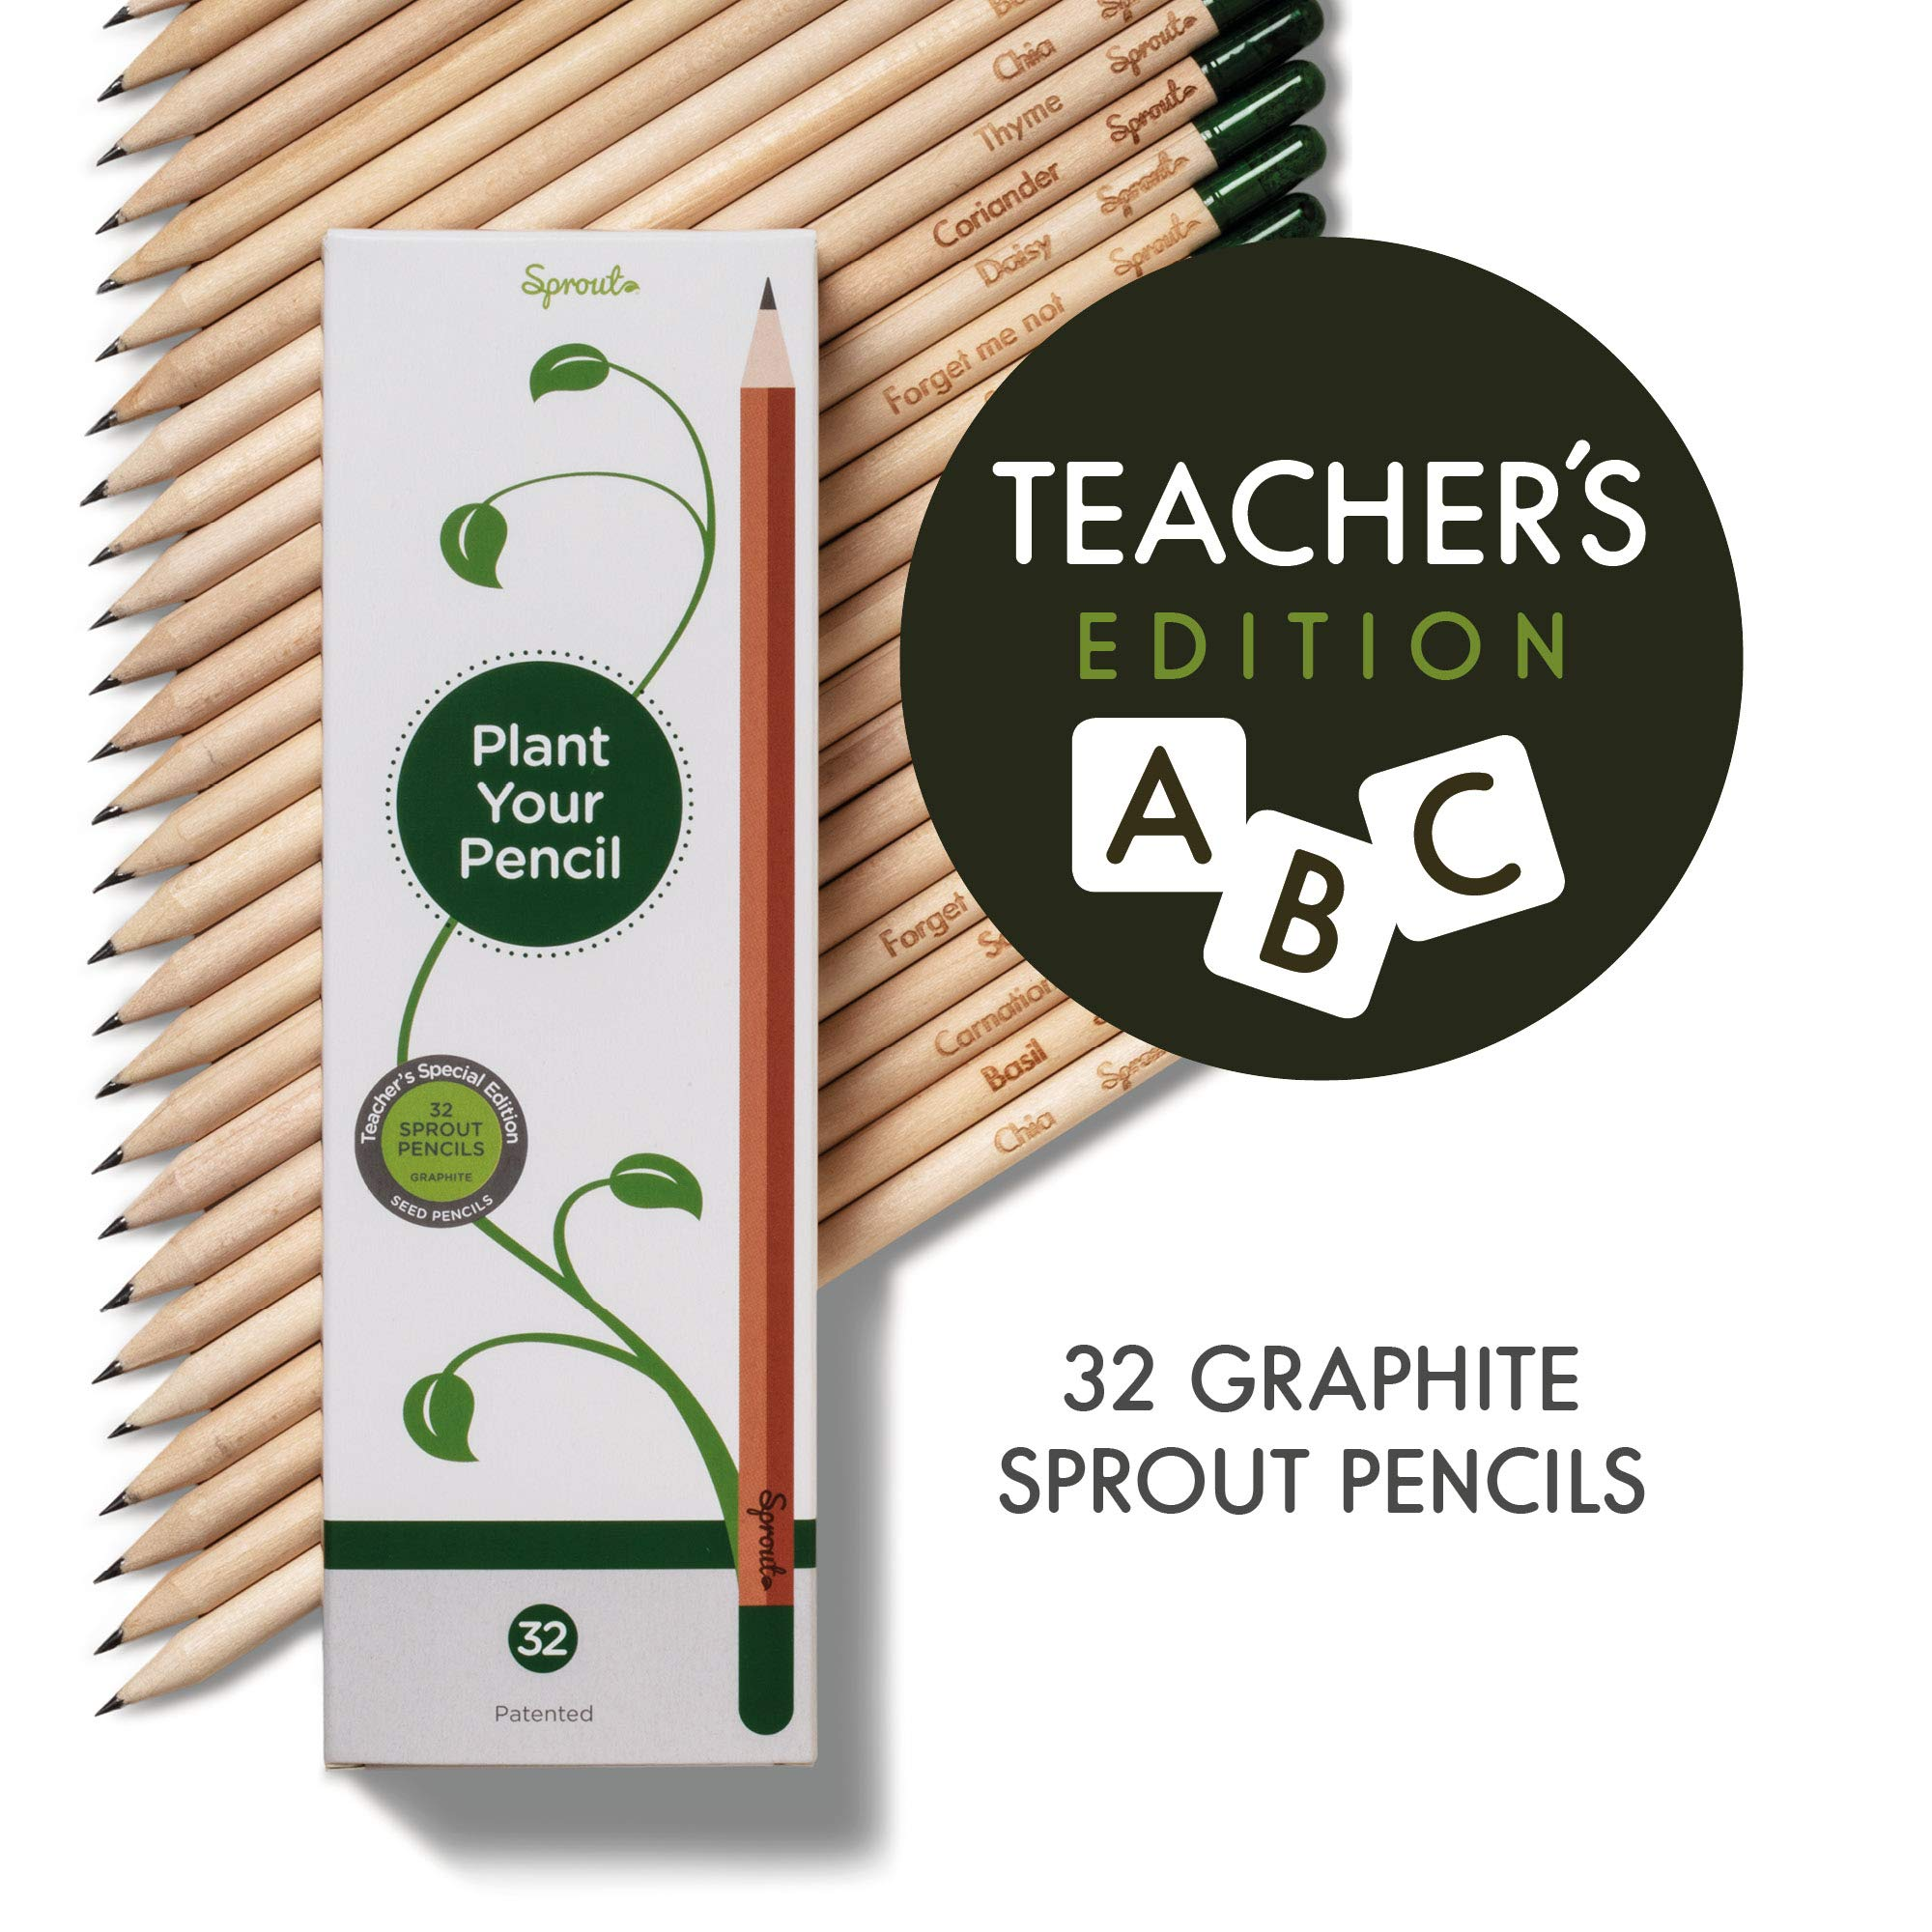 Teacher's Edition - Sprout plantable graphite pencils with seeds in eco friendly wood | 32 Pack |Gift set with herbs and flowers by Sprout